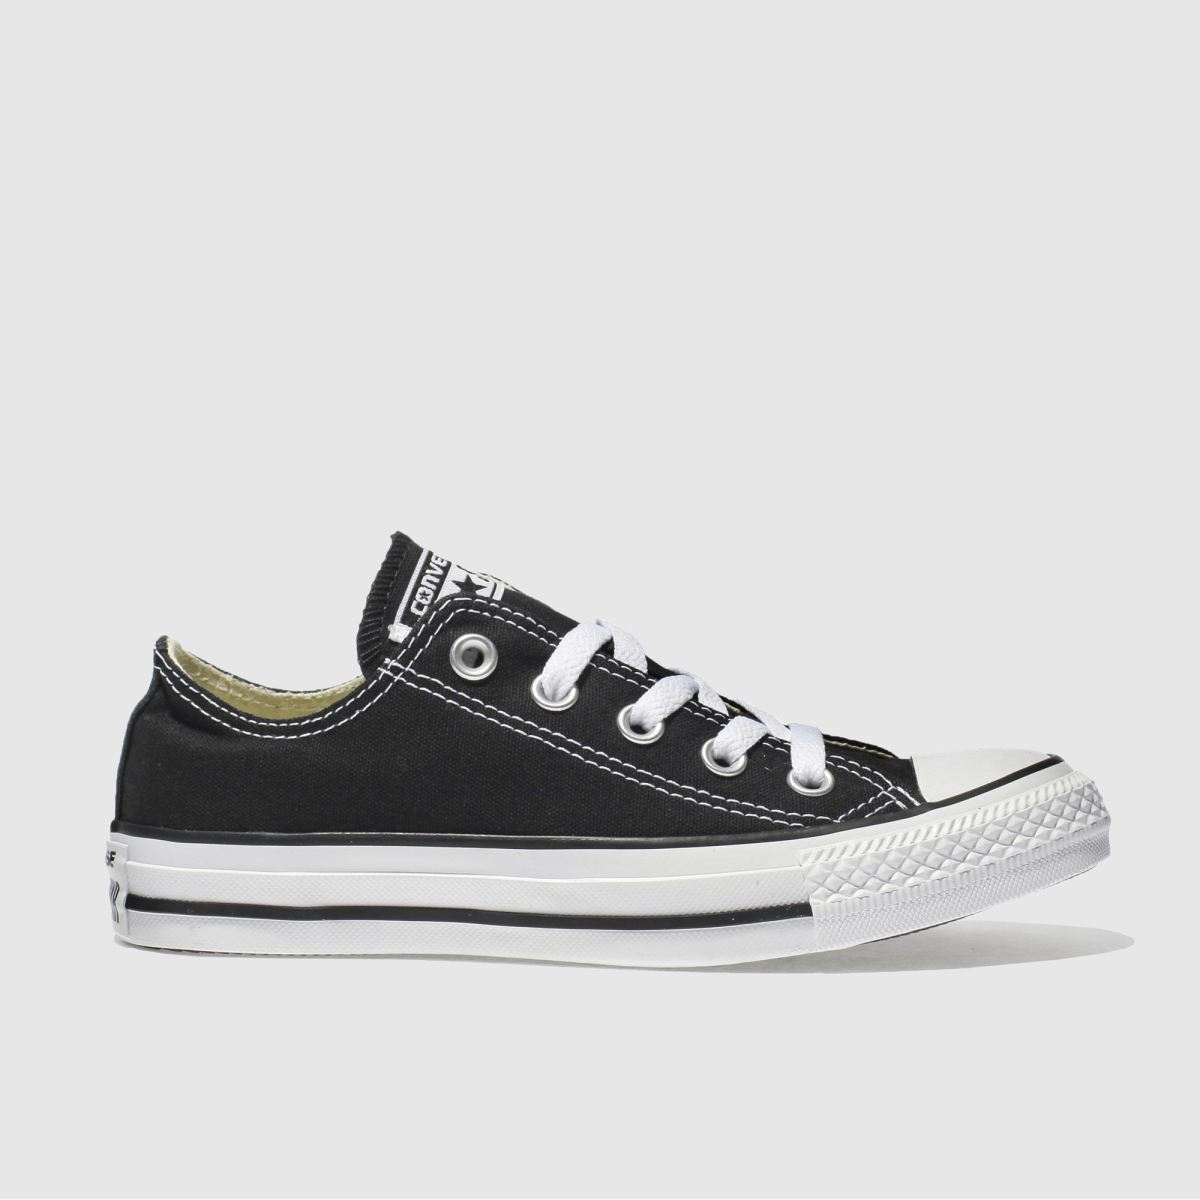 Buy Converse Black Leather